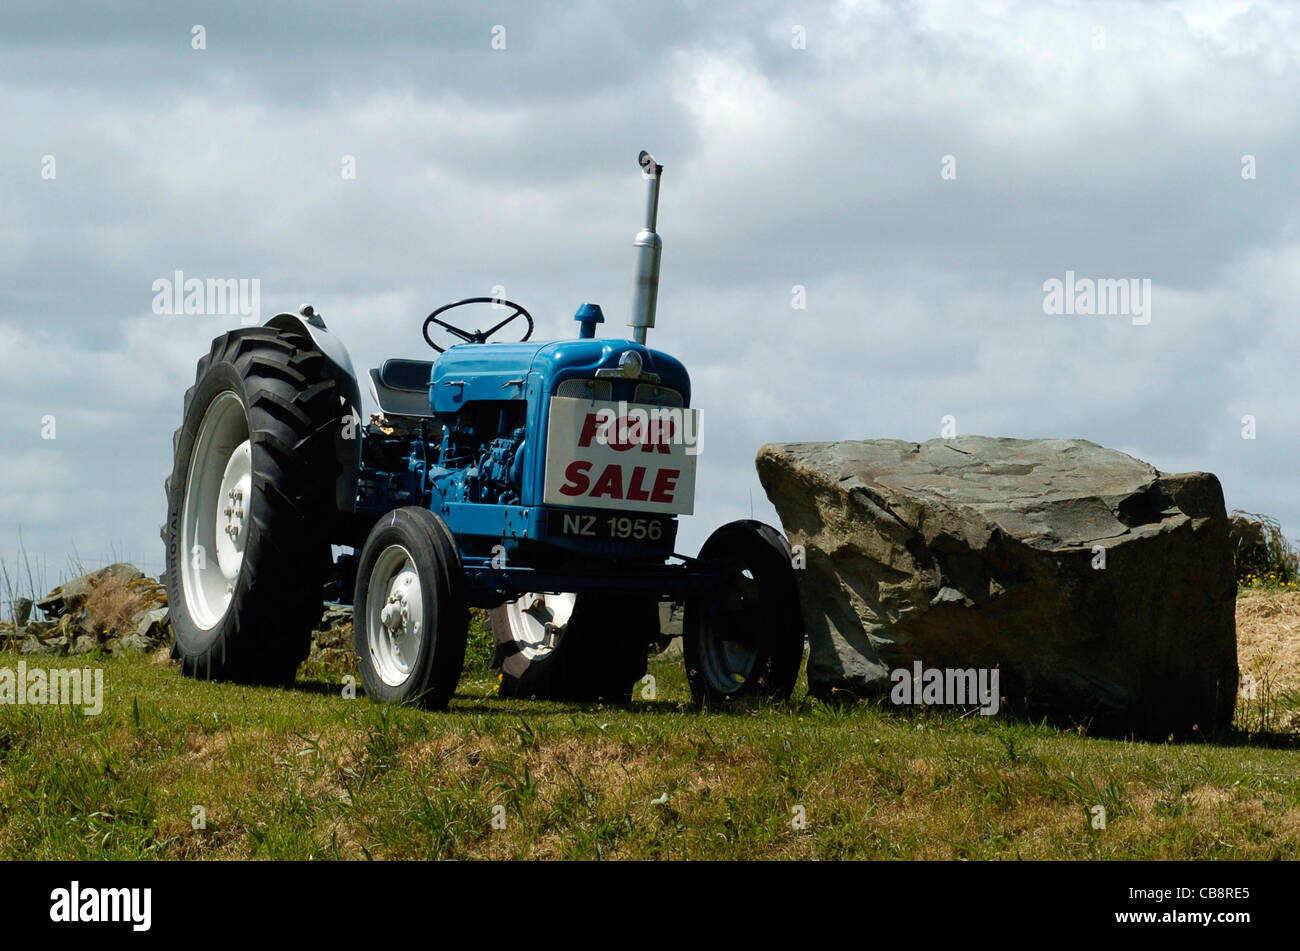 fordson major tractor stockfotos fordson major tractor bilder alamy. Black Bedroom Furniture Sets. Home Design Ideas